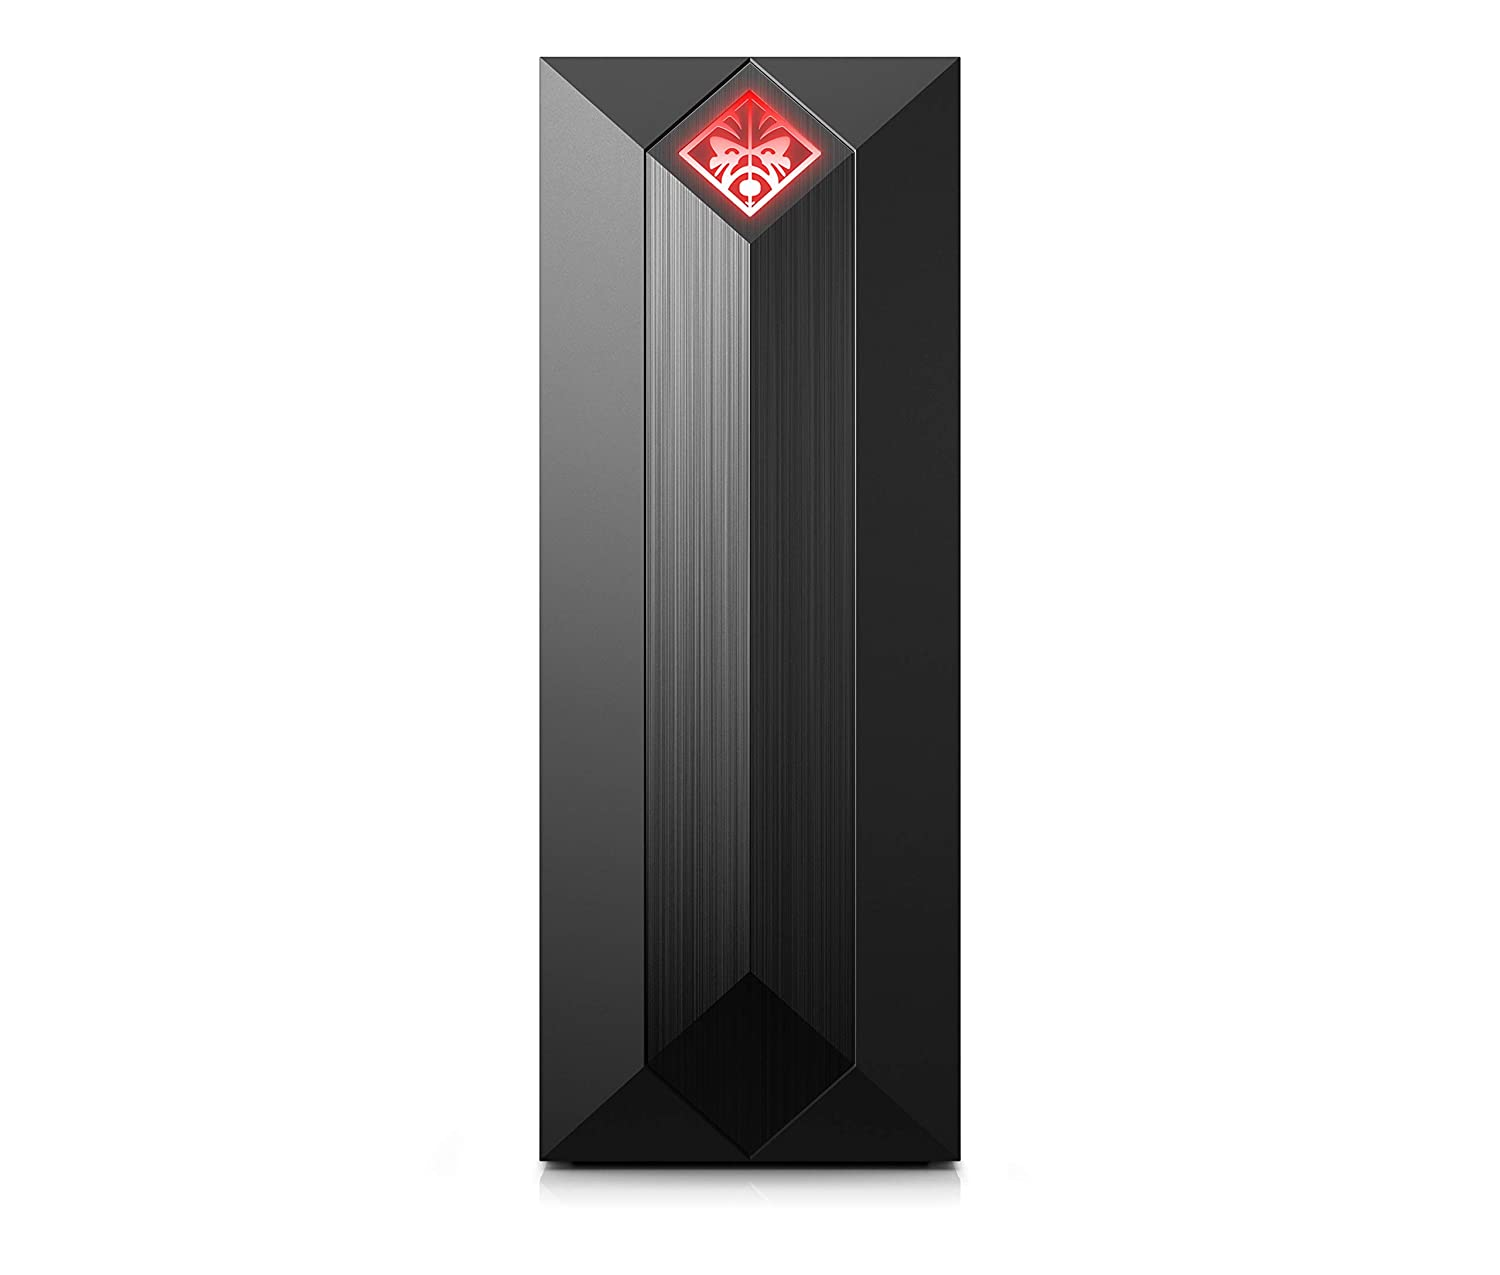 HP OMEN 875-0032ng 3,2 GHz AMD Ryzen 7 2700 Negro Escritorio PC - Ordenador de sobremesa (3,2 GHz, AMD Ryzen 7, 2700, 16 GB, 1256 GB, Windows 10 Home)